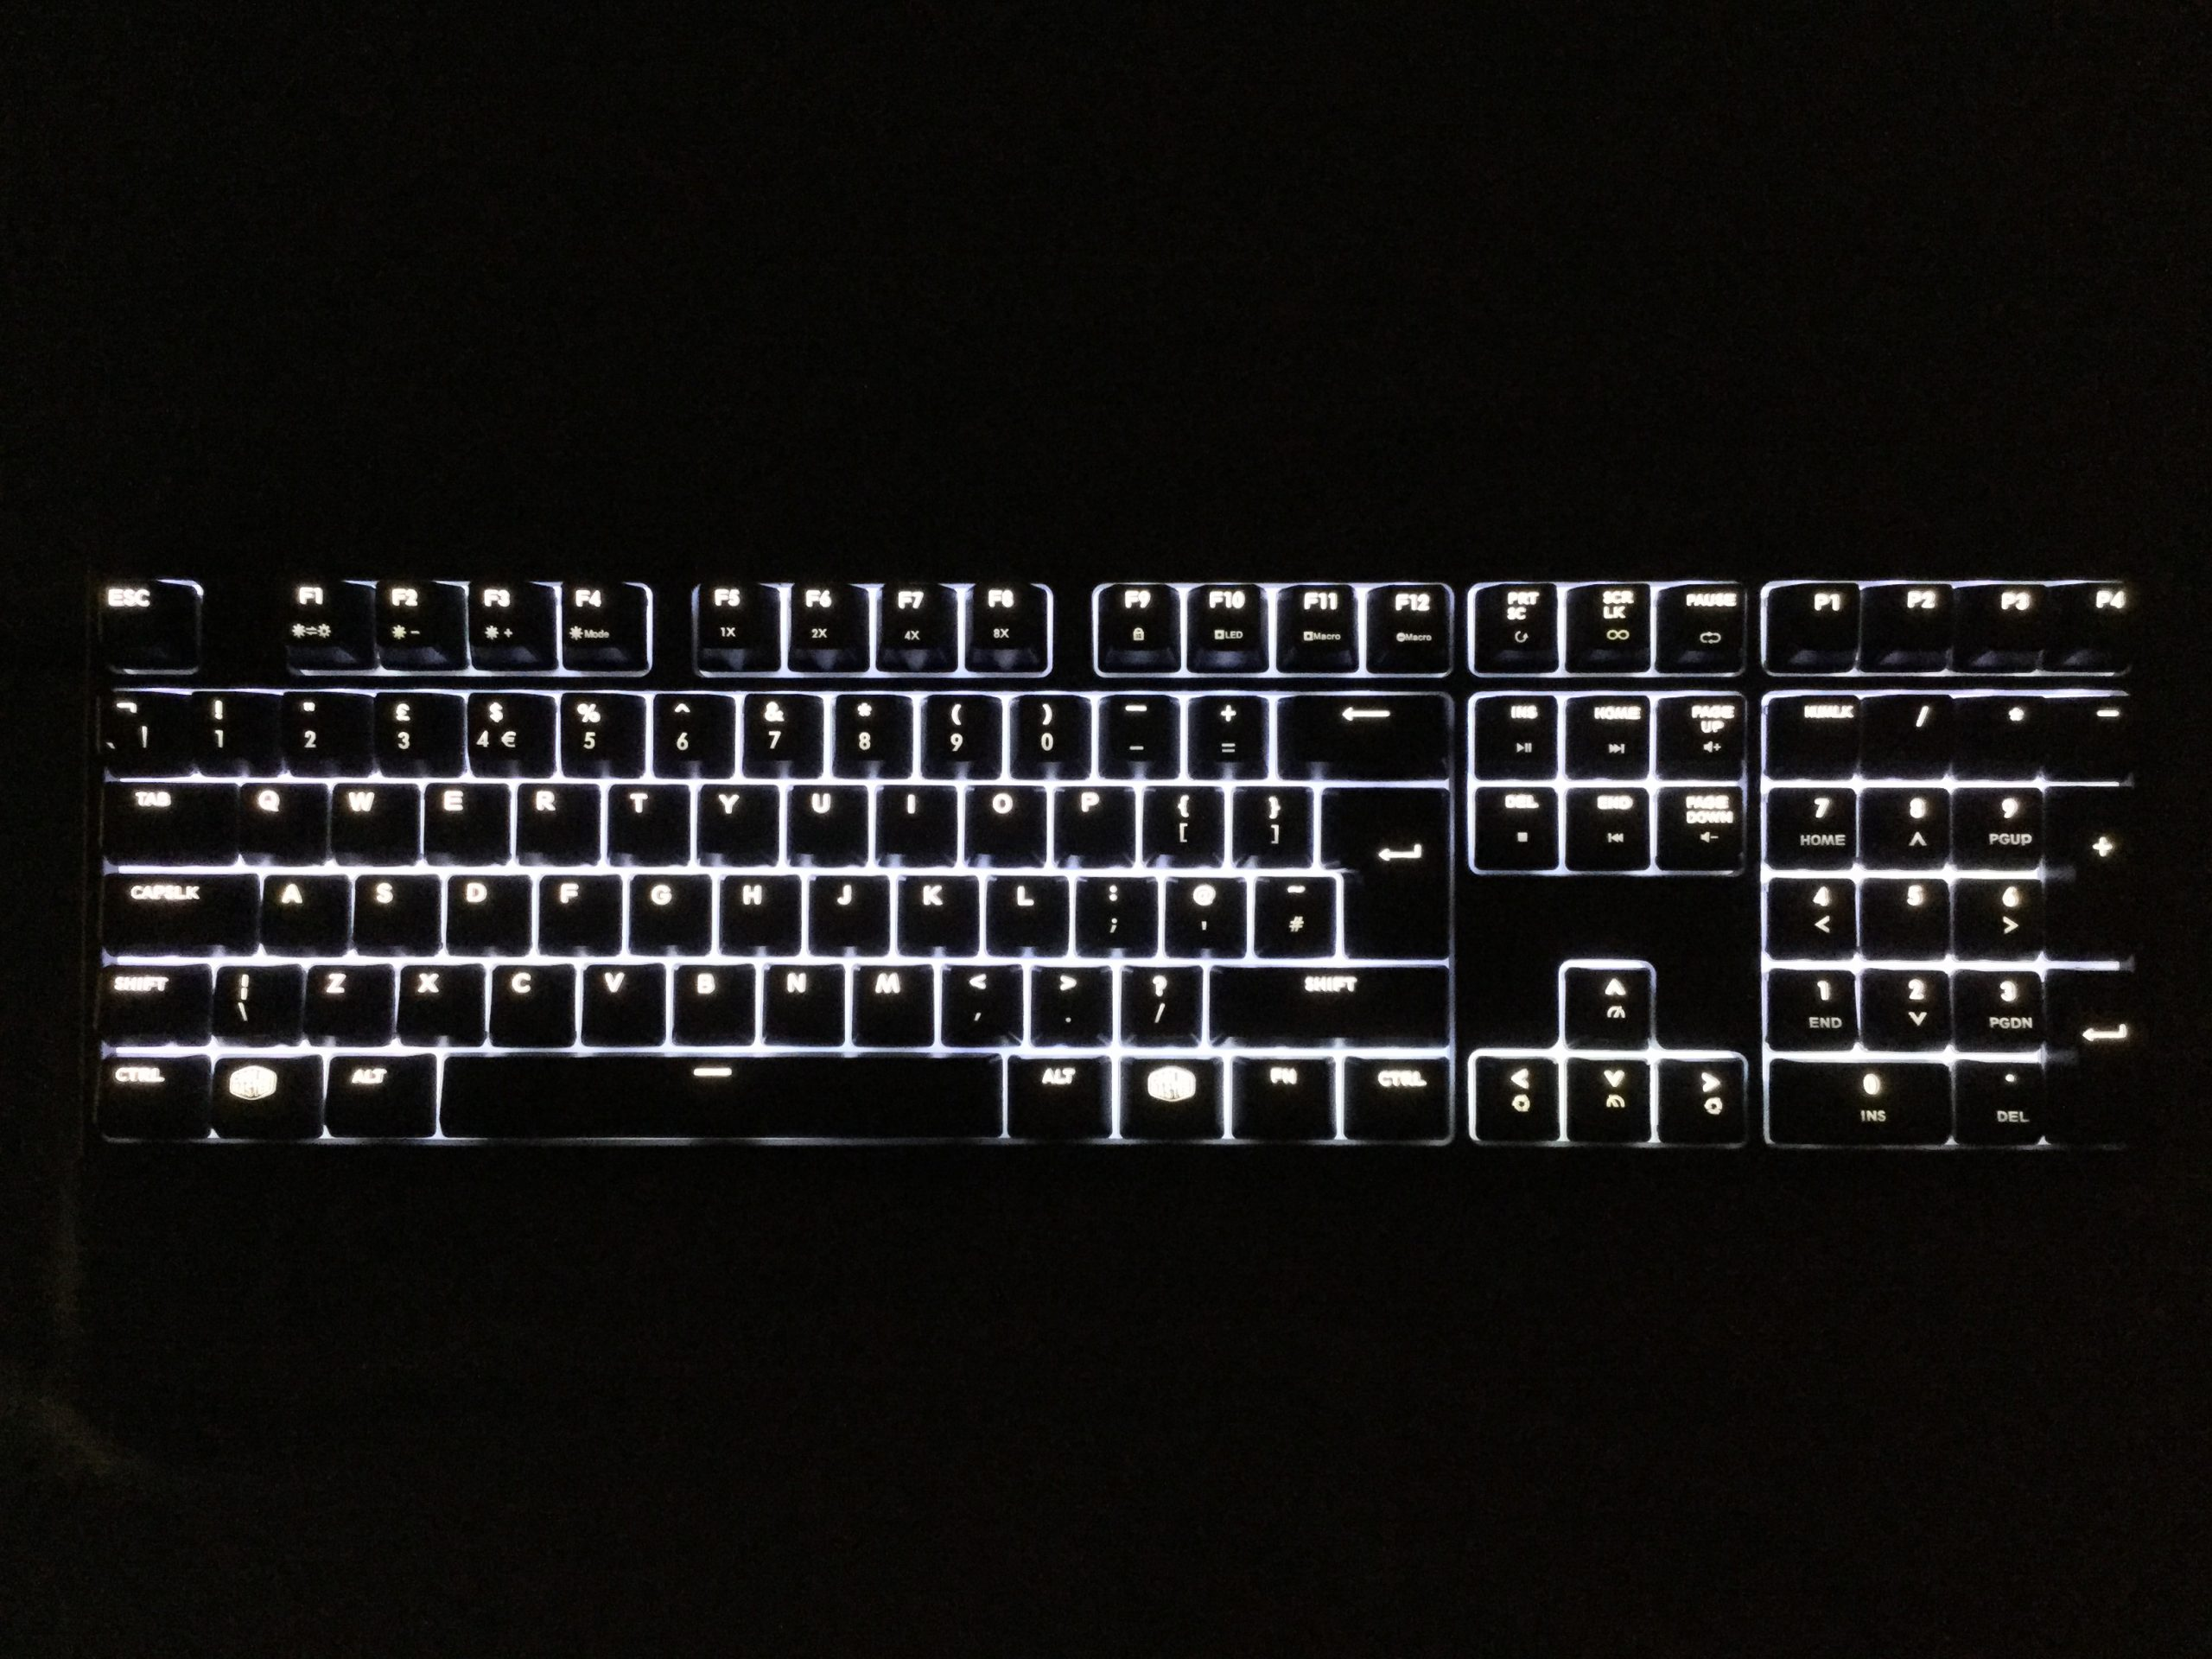 A Cooler Master Masterkeys Pro L with Cherry MX Brown switches.